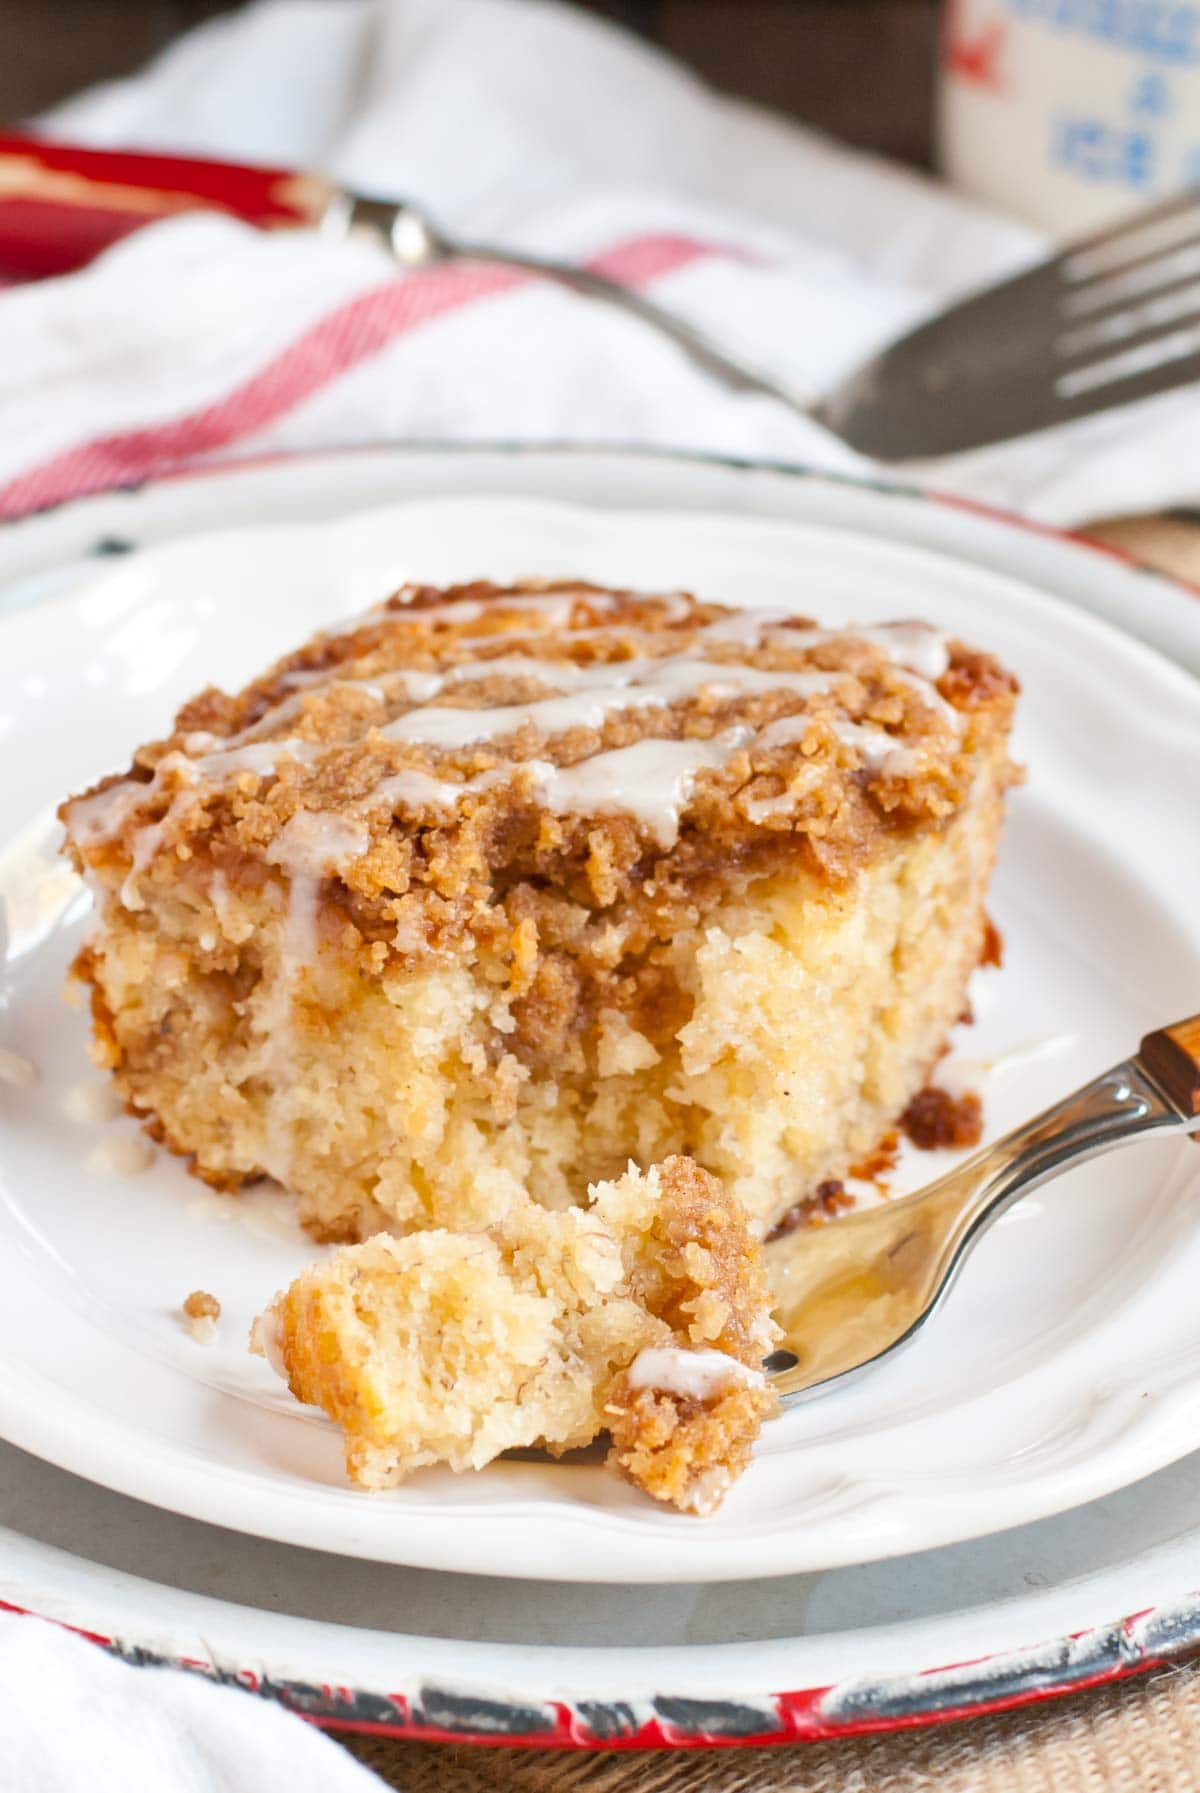 This amazing Banana Crumb Cake has a crunchy brown sugar crumb topping and ultra moist cinnamon banana cake.